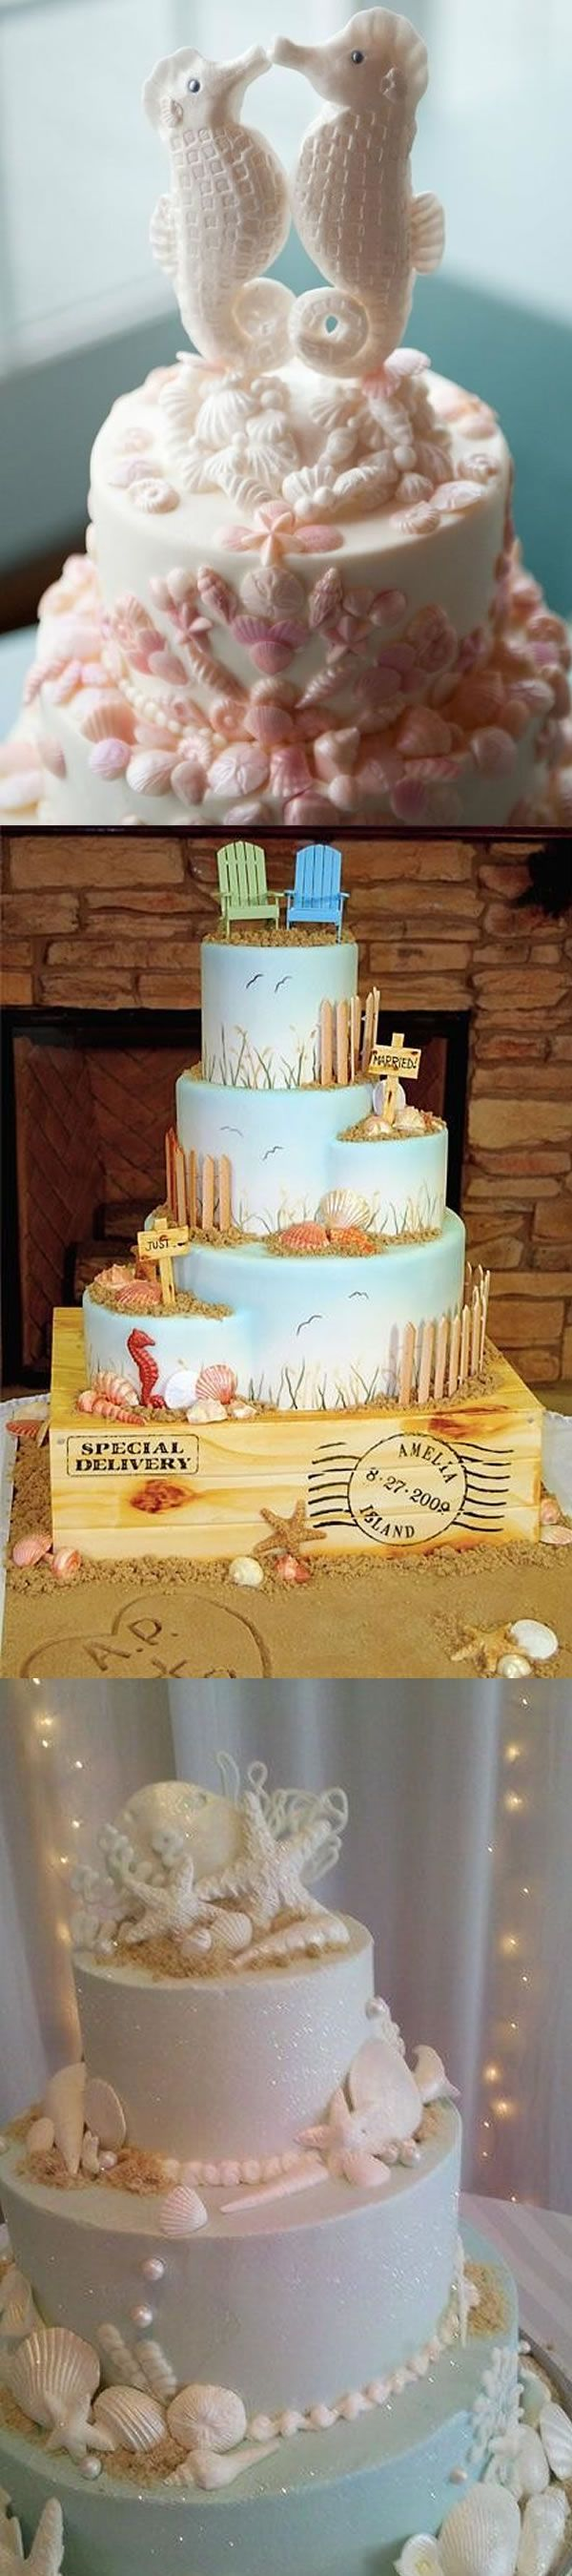 20 Best Images About Cakes On Pinterest